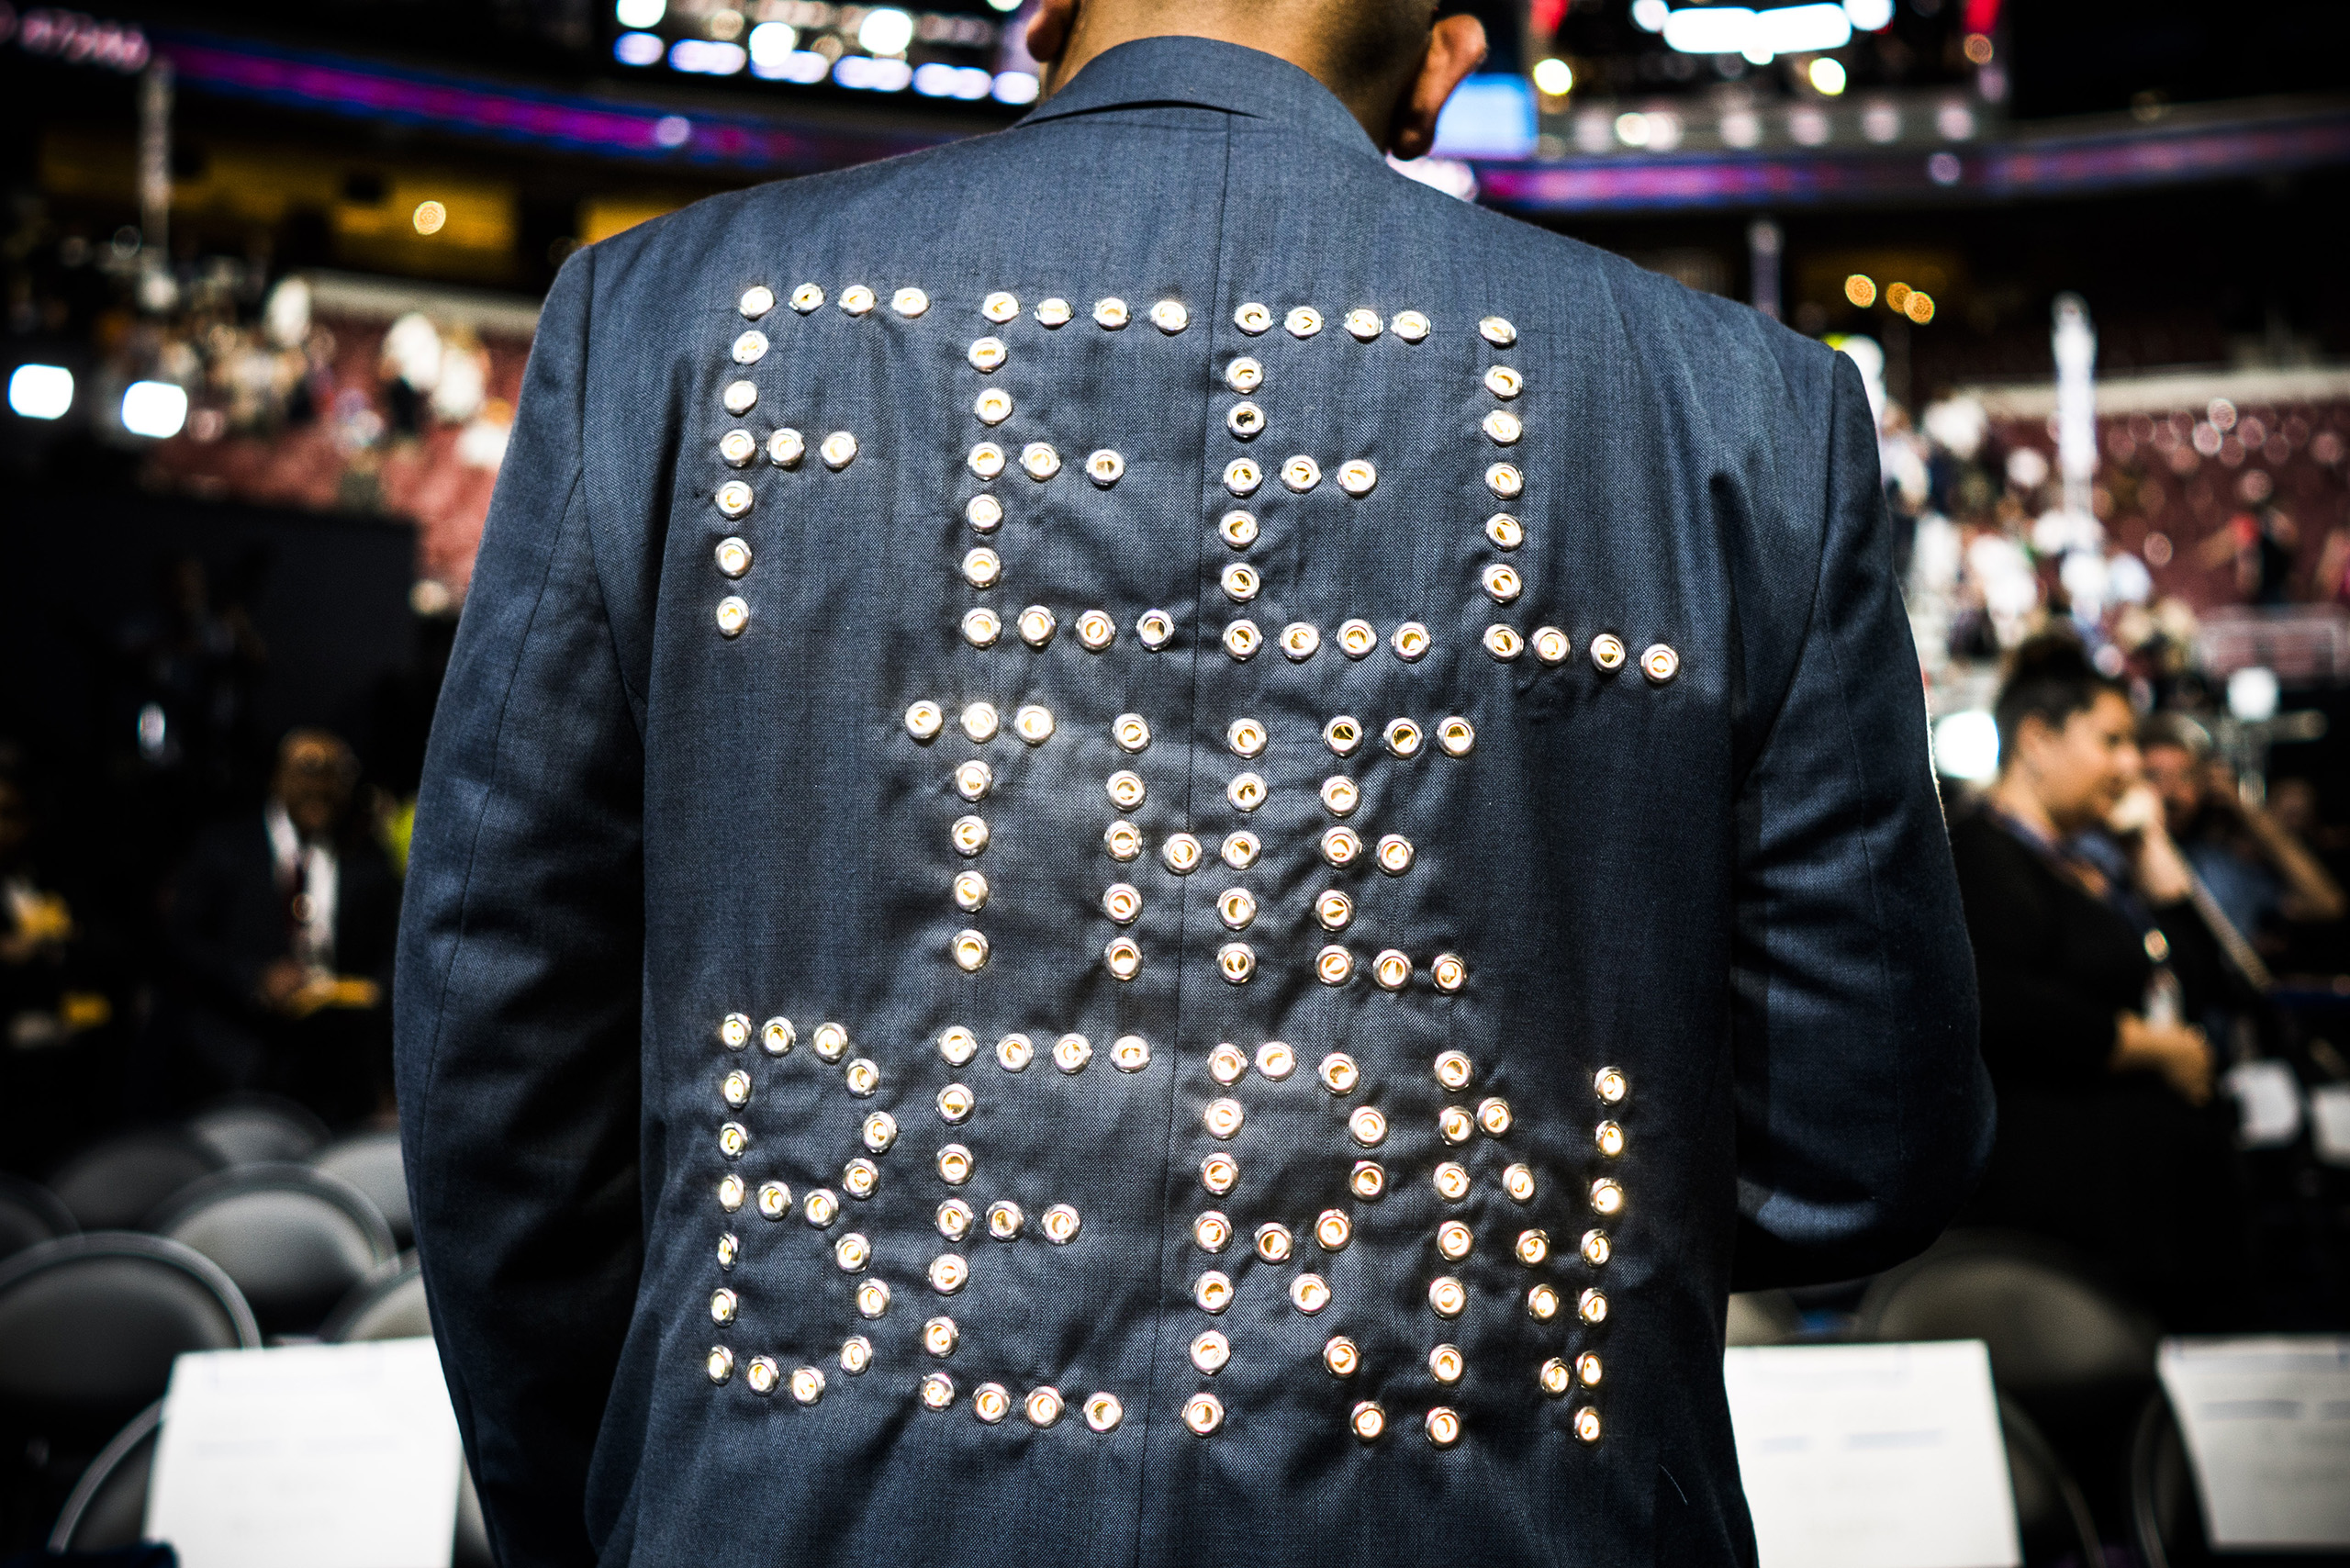 The back of a Sanders supporter's jacket on the first day of the Democratic National Convention at the Wells Fargo Center, July 25, 2016 in Philadelphia, Pennsylvania.